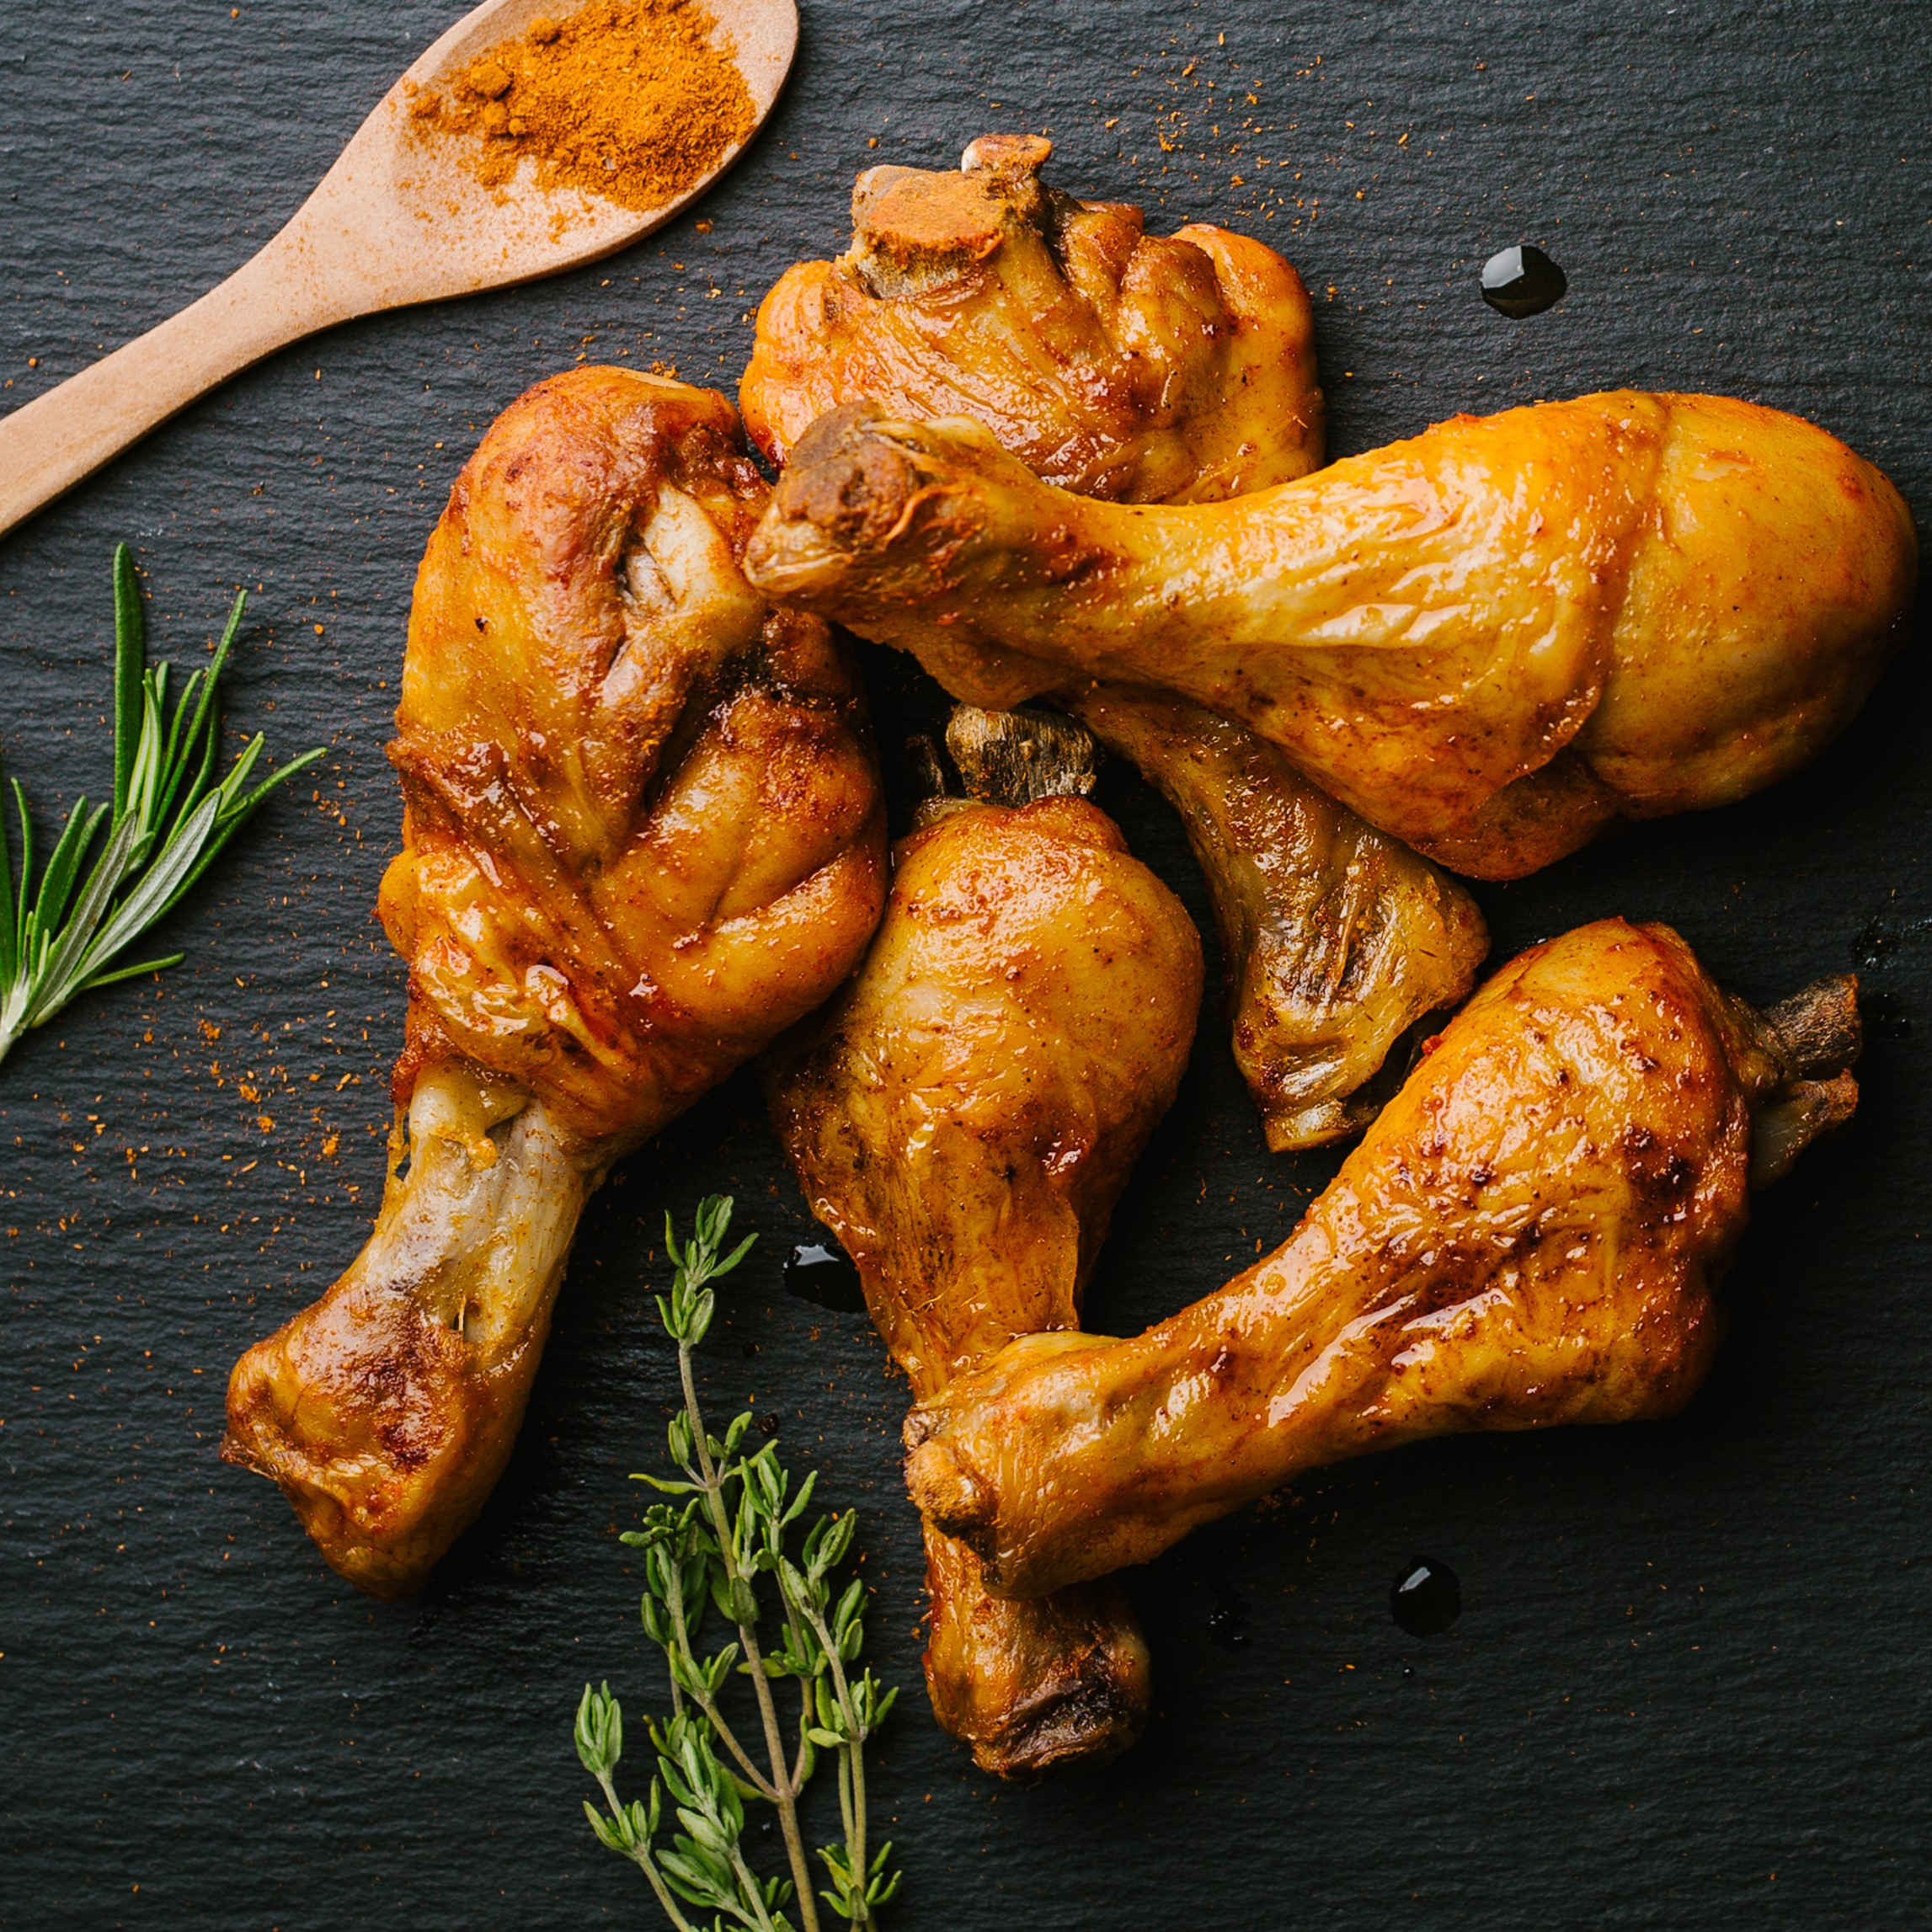 Chicken Drumsticks (sold out for season - back in stock June)